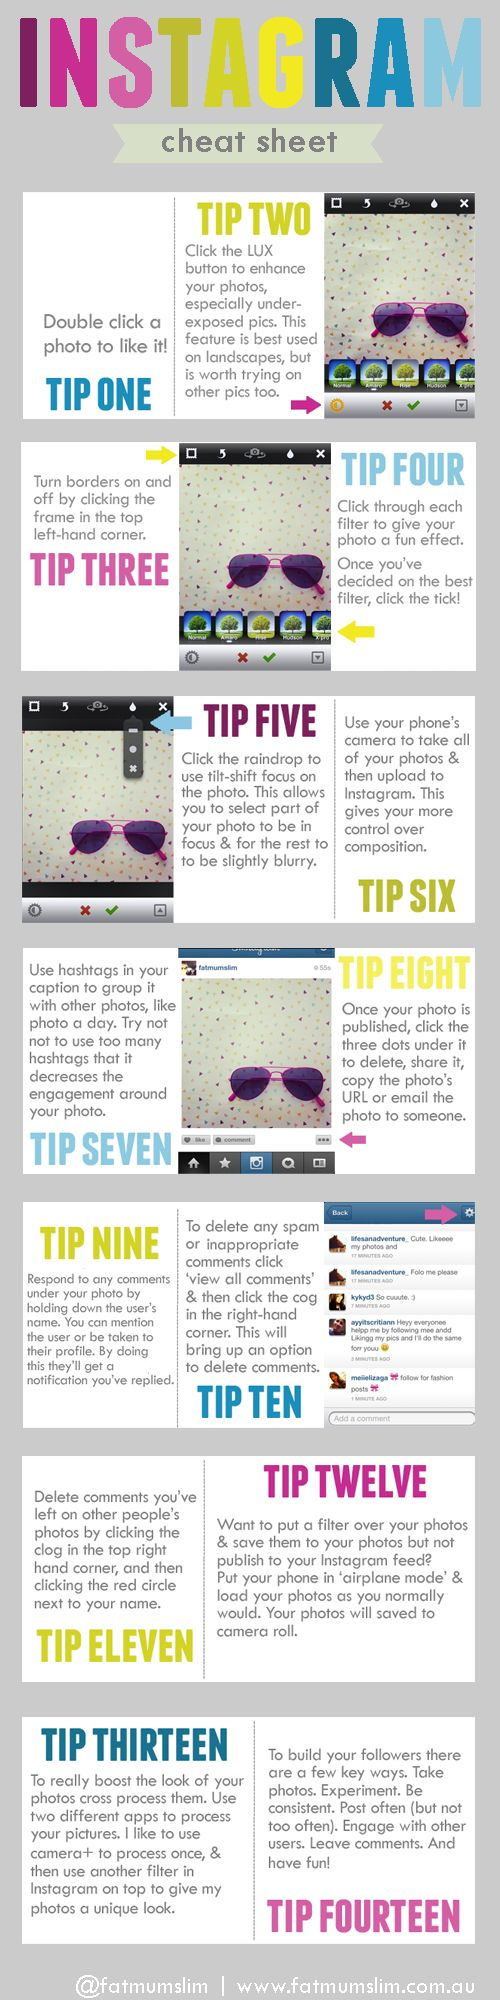 Instagram Tips!